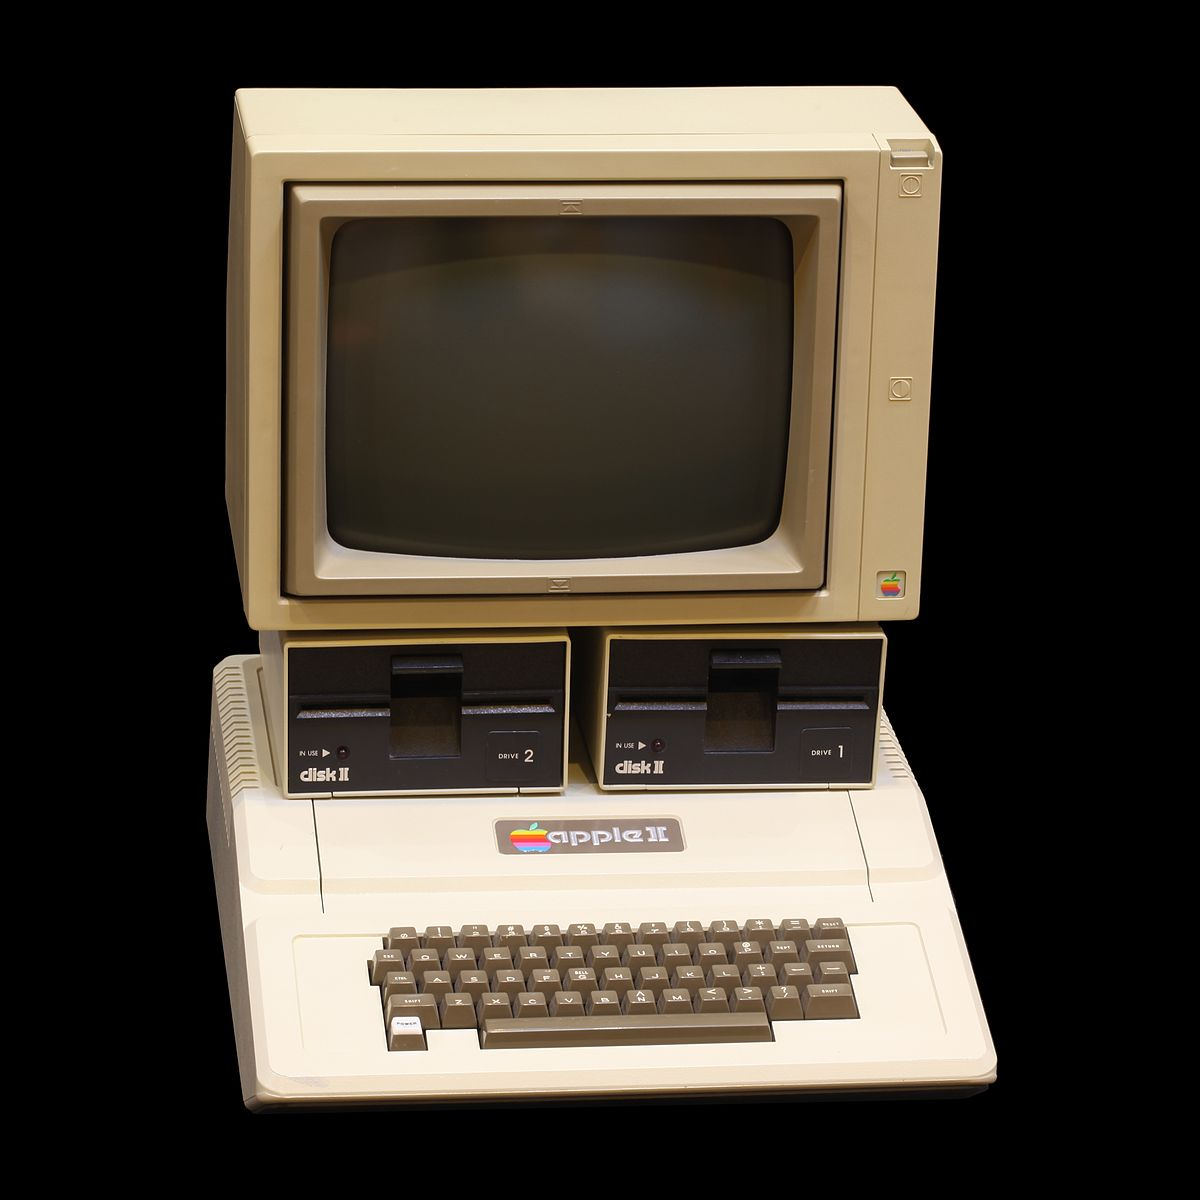 Apple ii wikipedia la enciclopedia libre for Computadora wikipedia